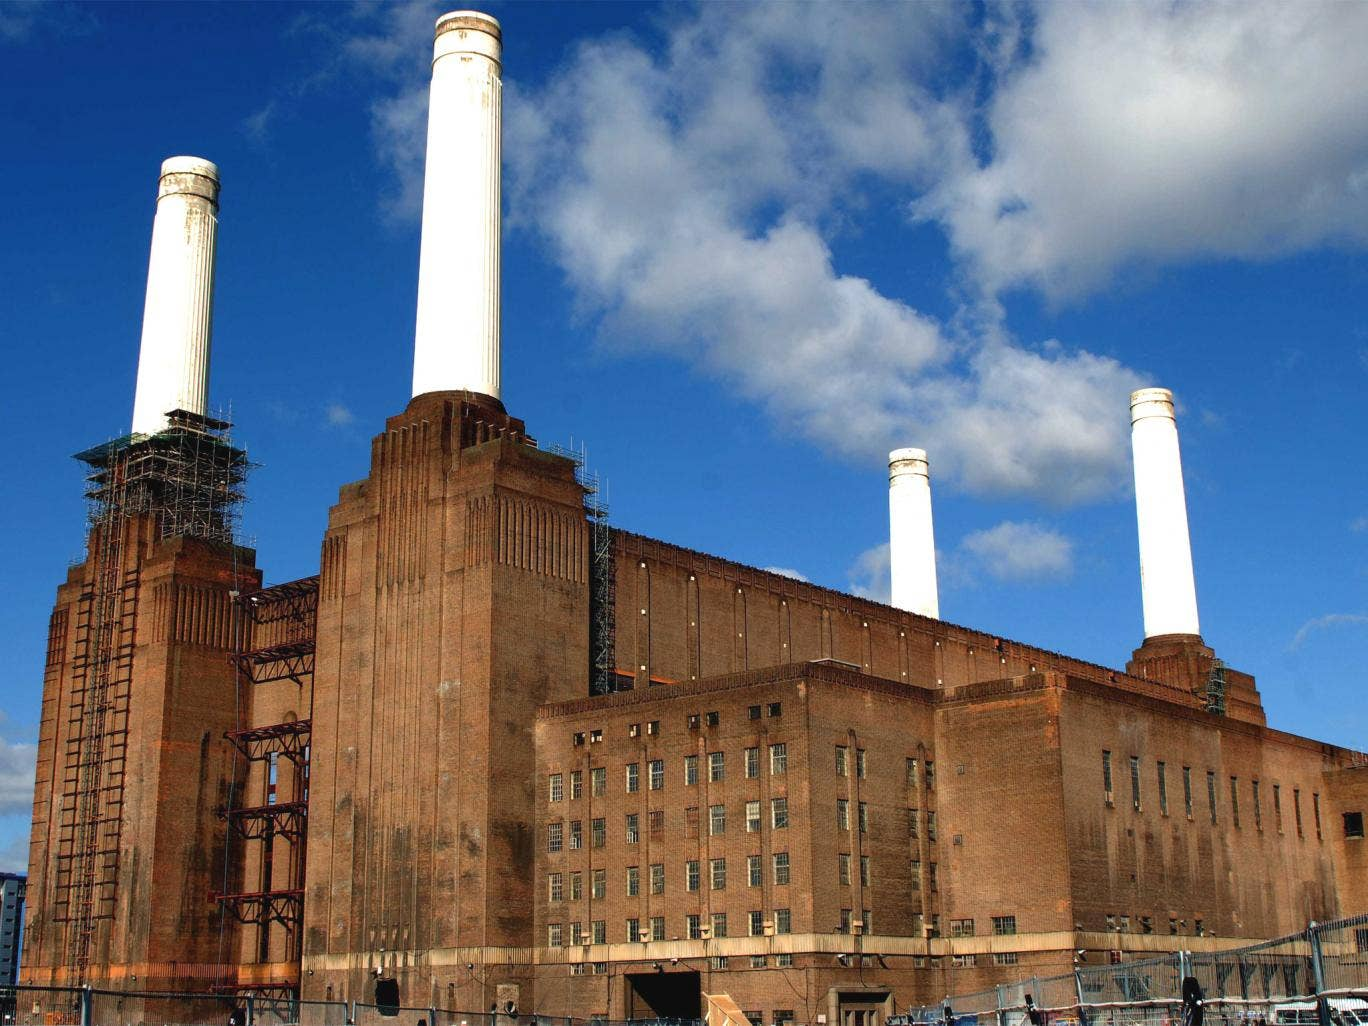 Battersea Power Station was decommissioned in 1983